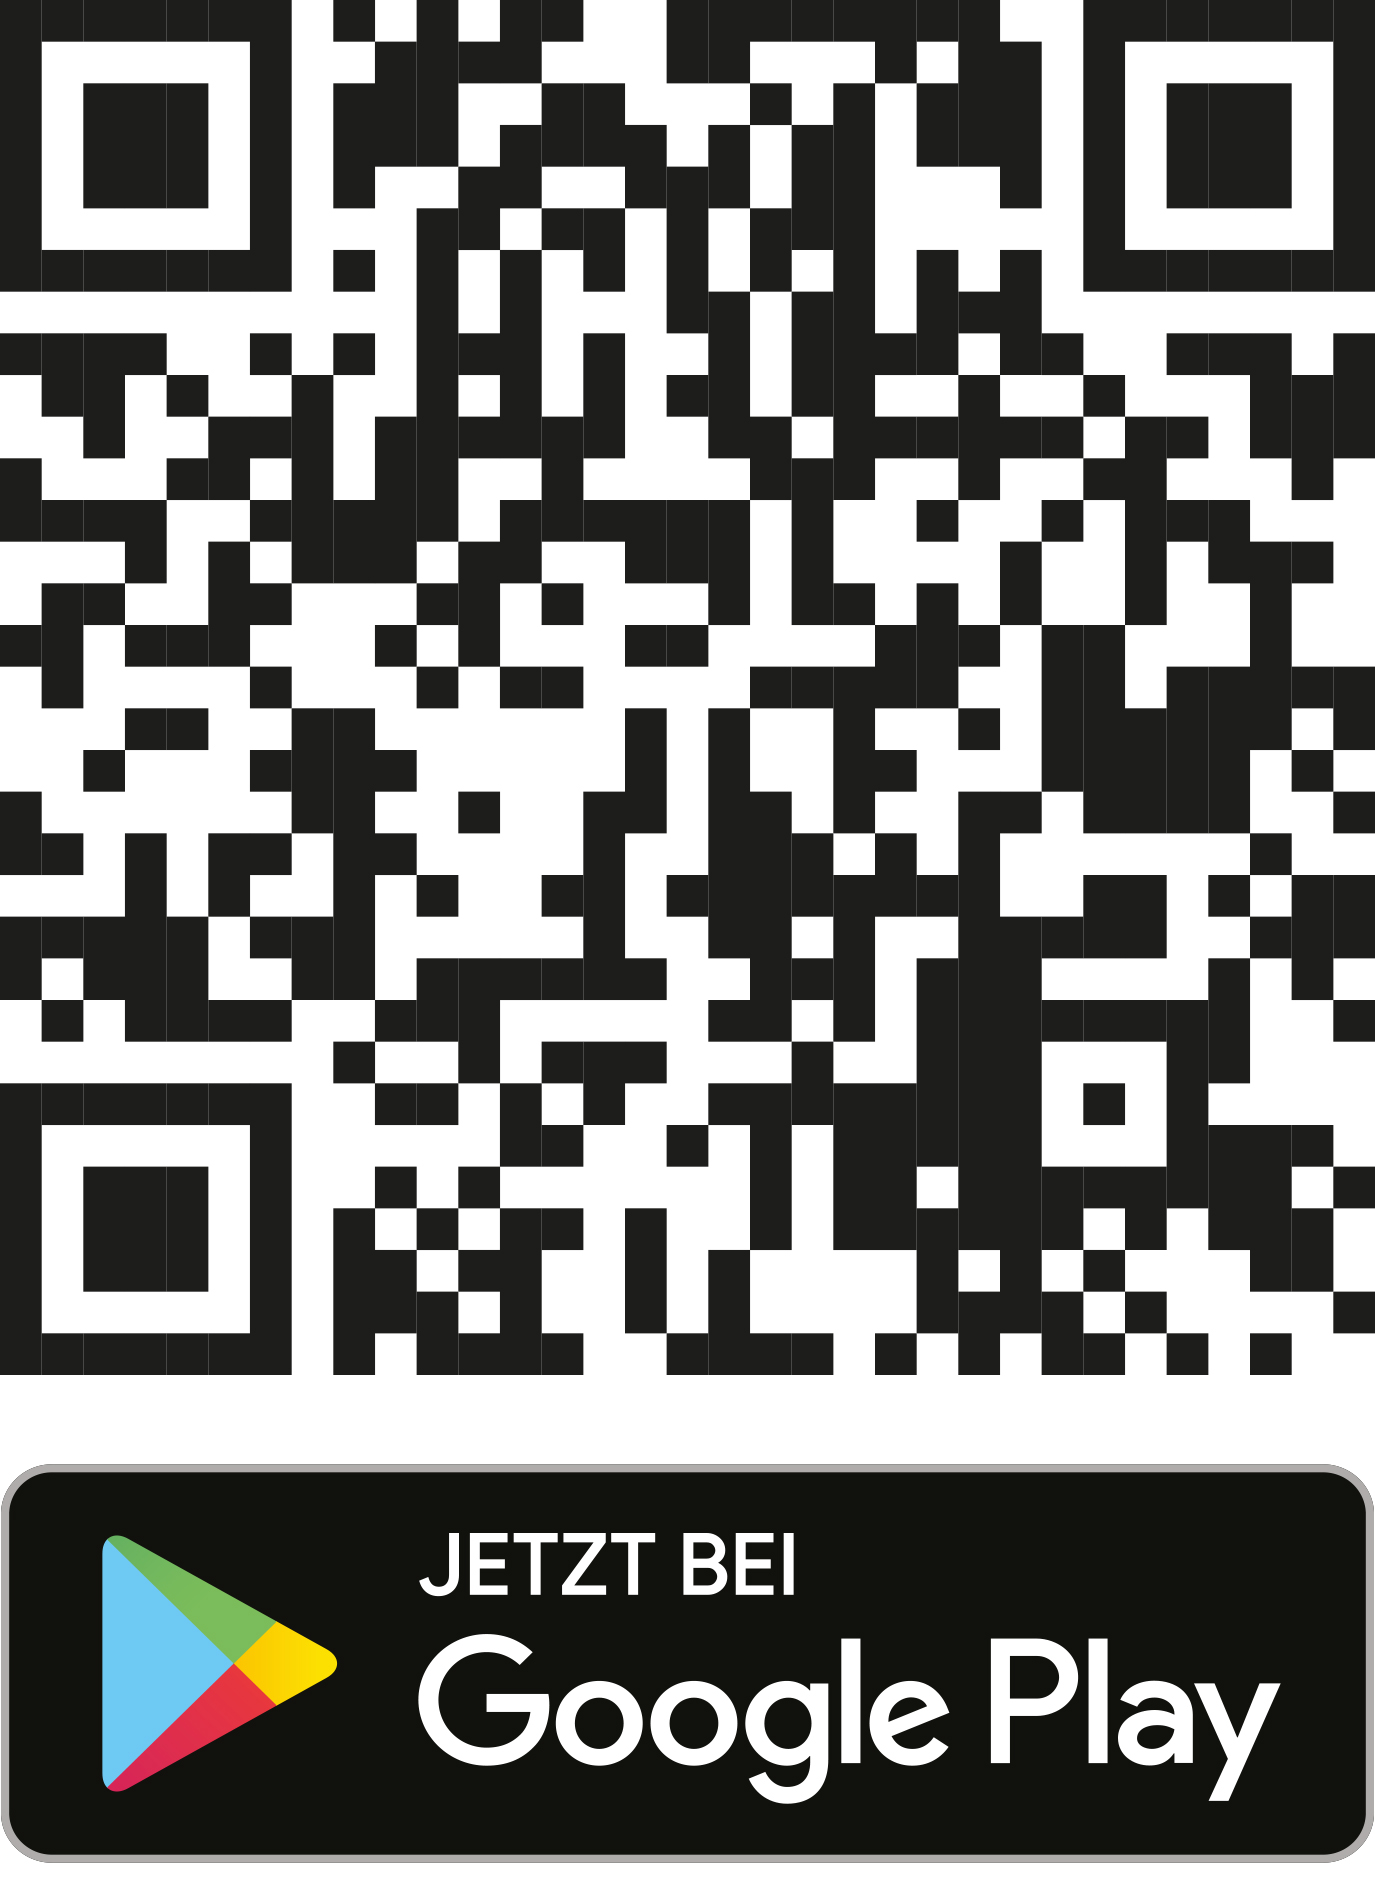 qrcode_googleplay2